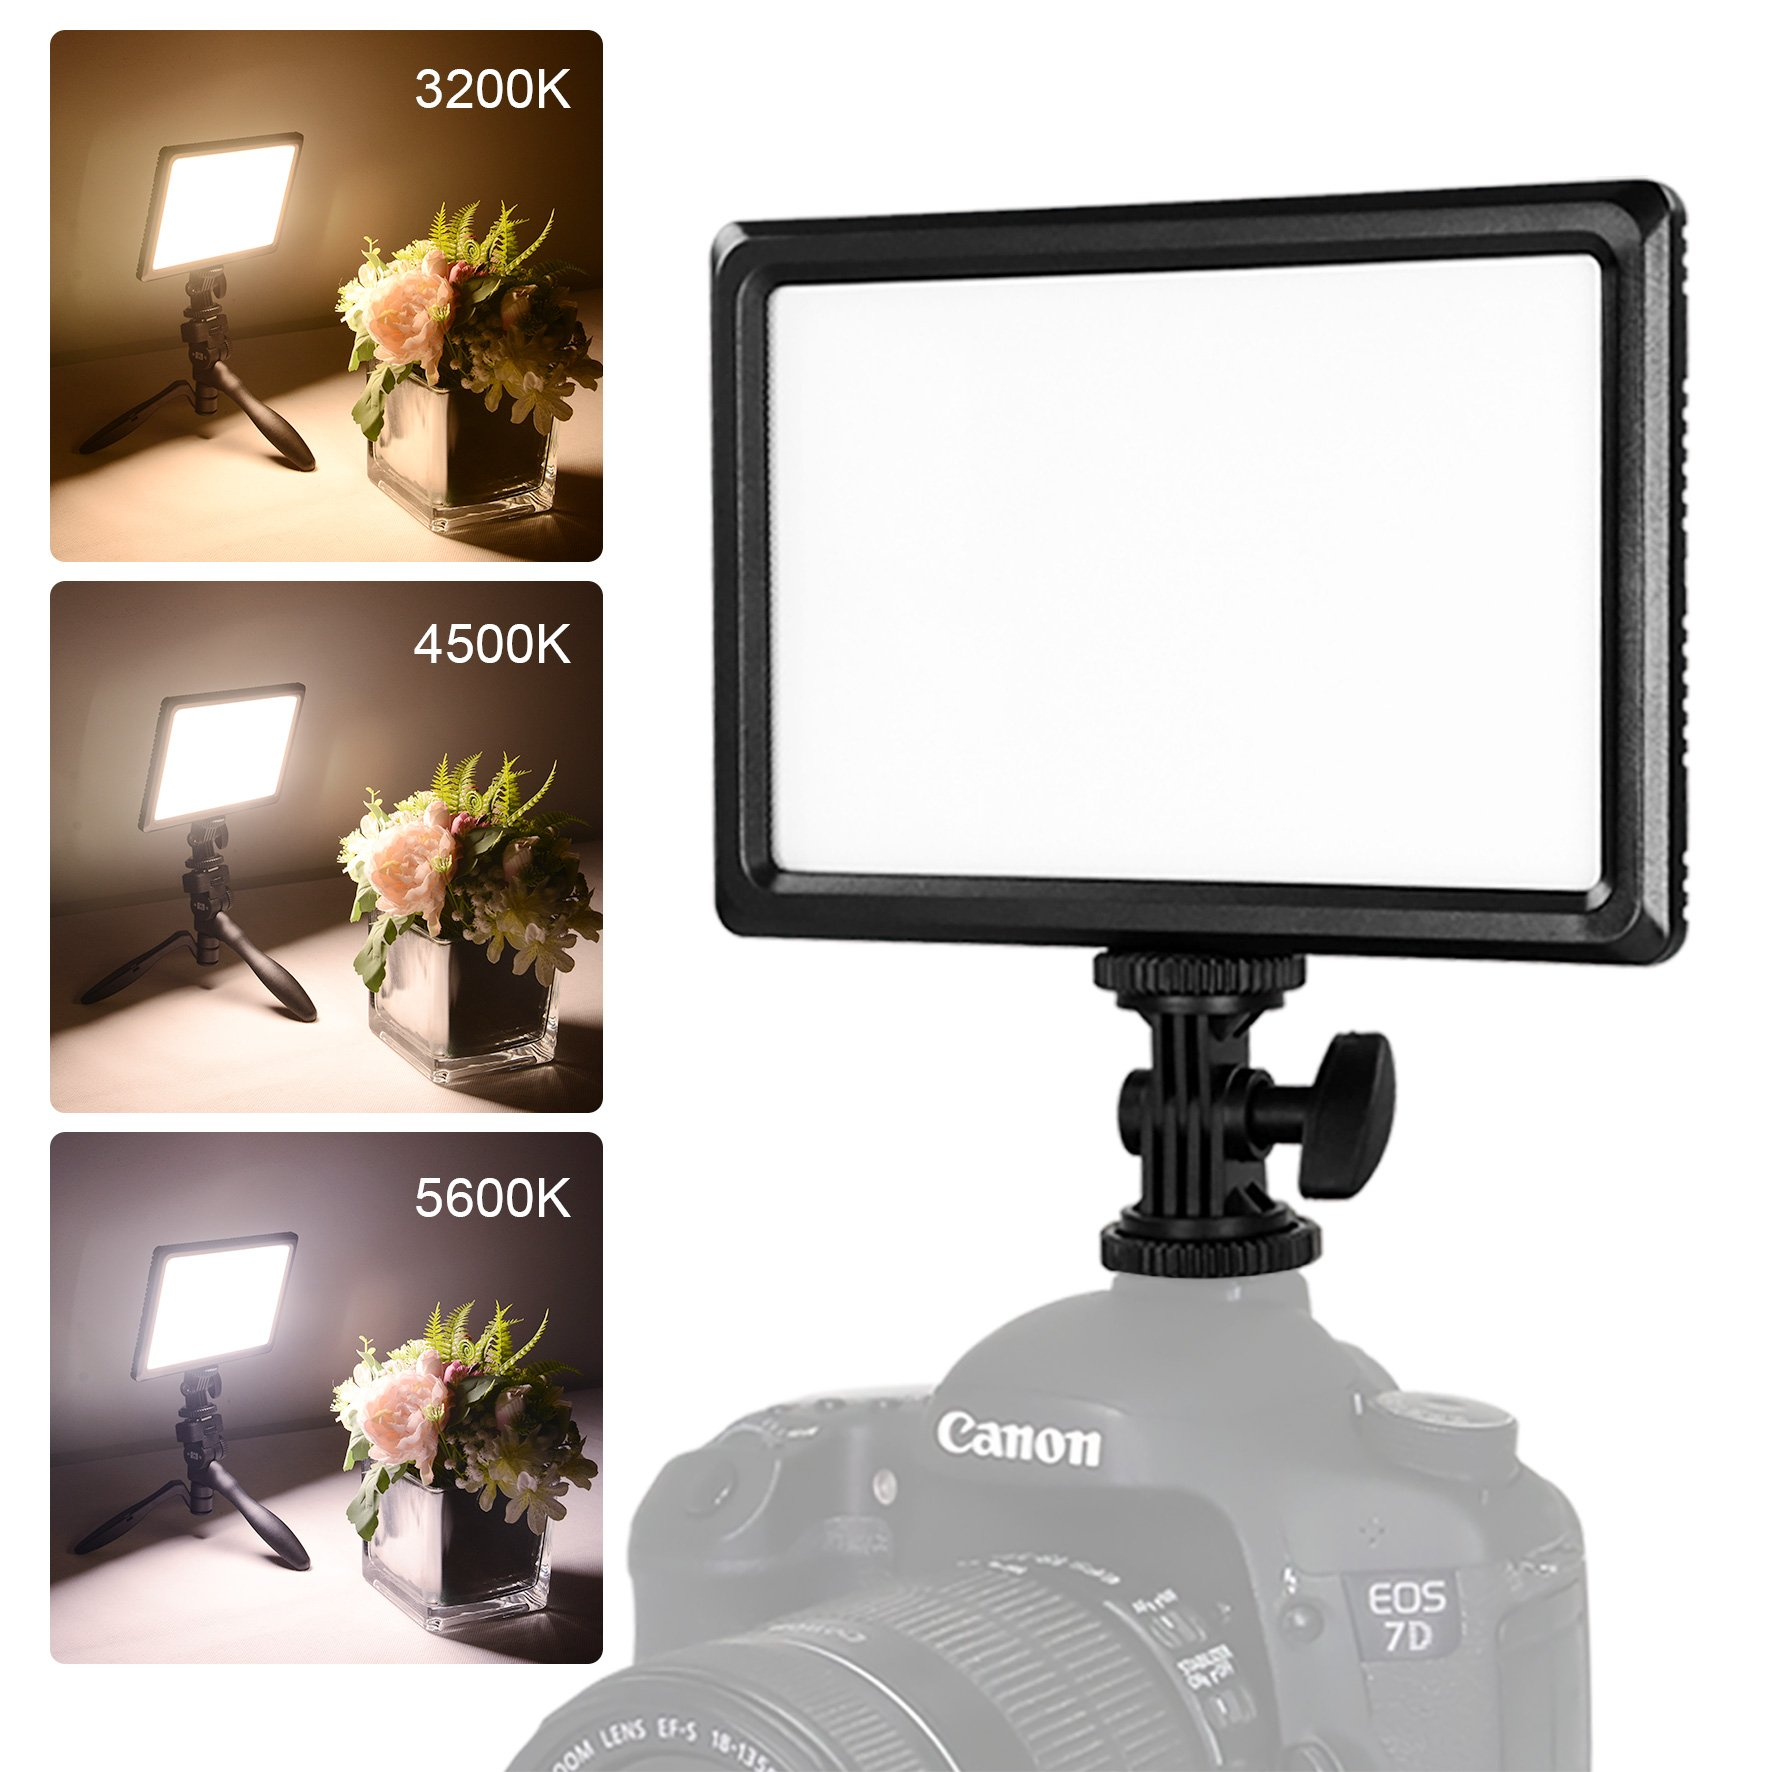 """NanGuang Luxpad22 3200K-5600K Dimmable LED Video Light, Bright Super Slim Design with ¼"""" Mount for YouTube Videos, Close-up,Portrait,Children,Wedding Photography,Outdoor Shooting and Video Shooting"""